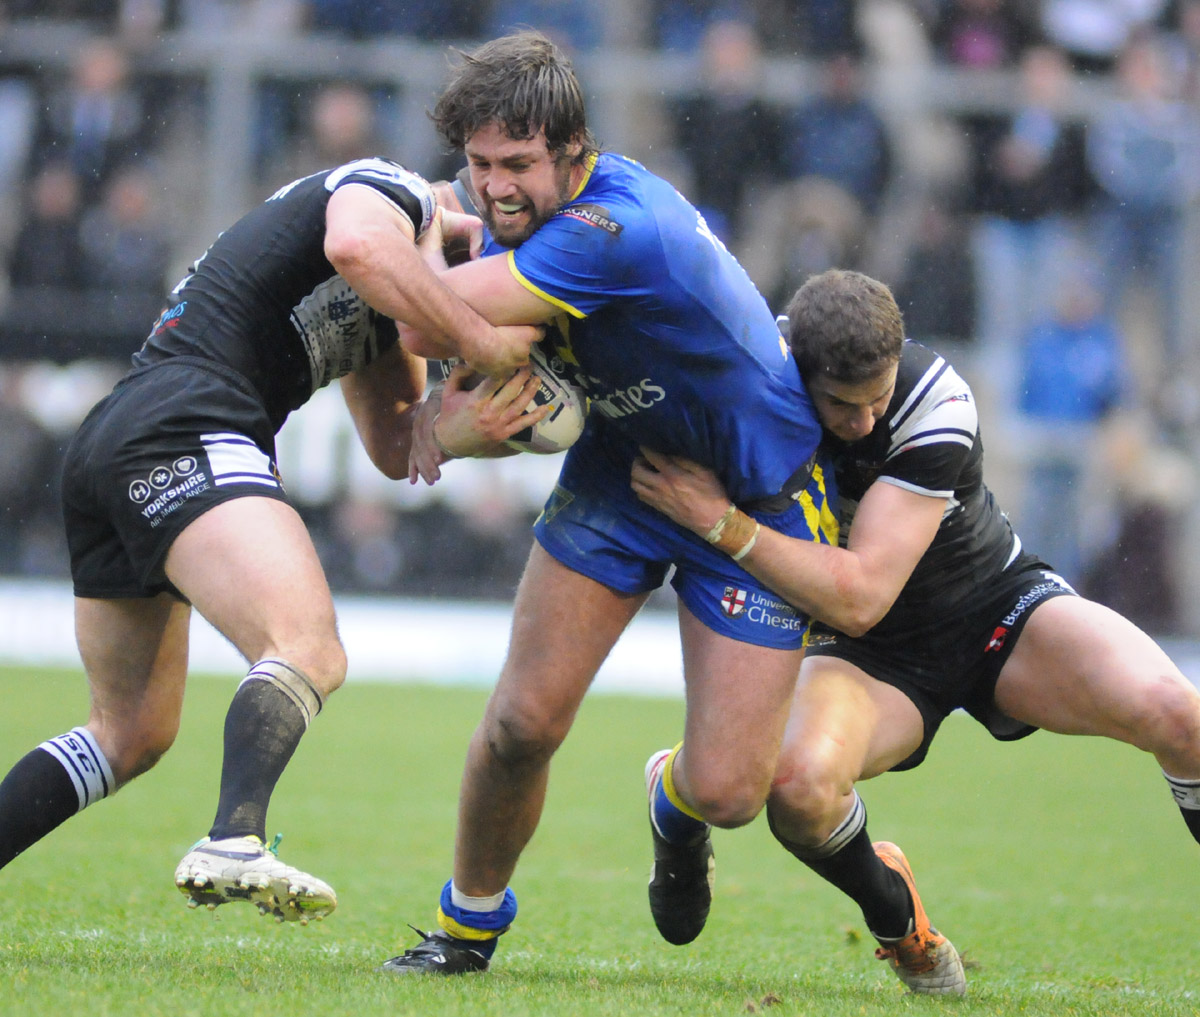 FULL TIME, PICTURES ADDED: Warrington Wolves 18 Hull FC 16